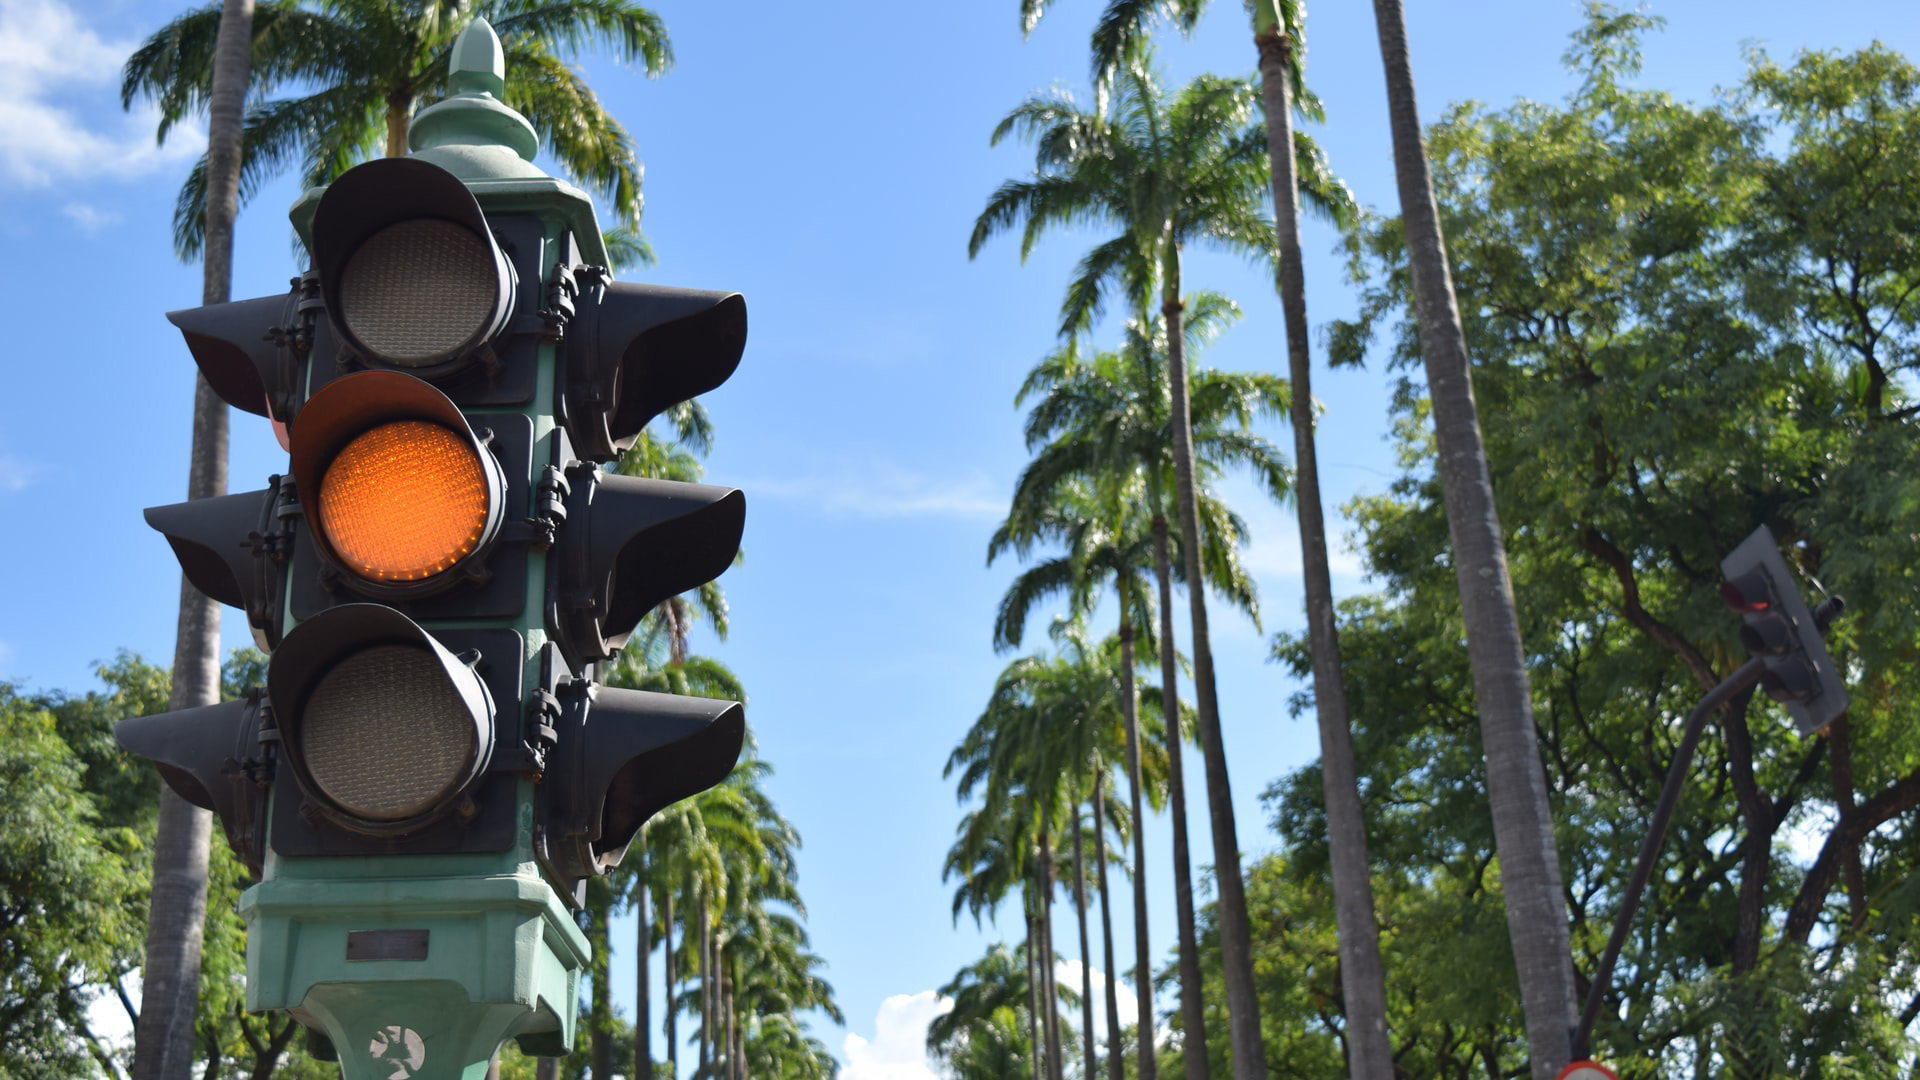 Traffic Light System Removed and PCR Updates